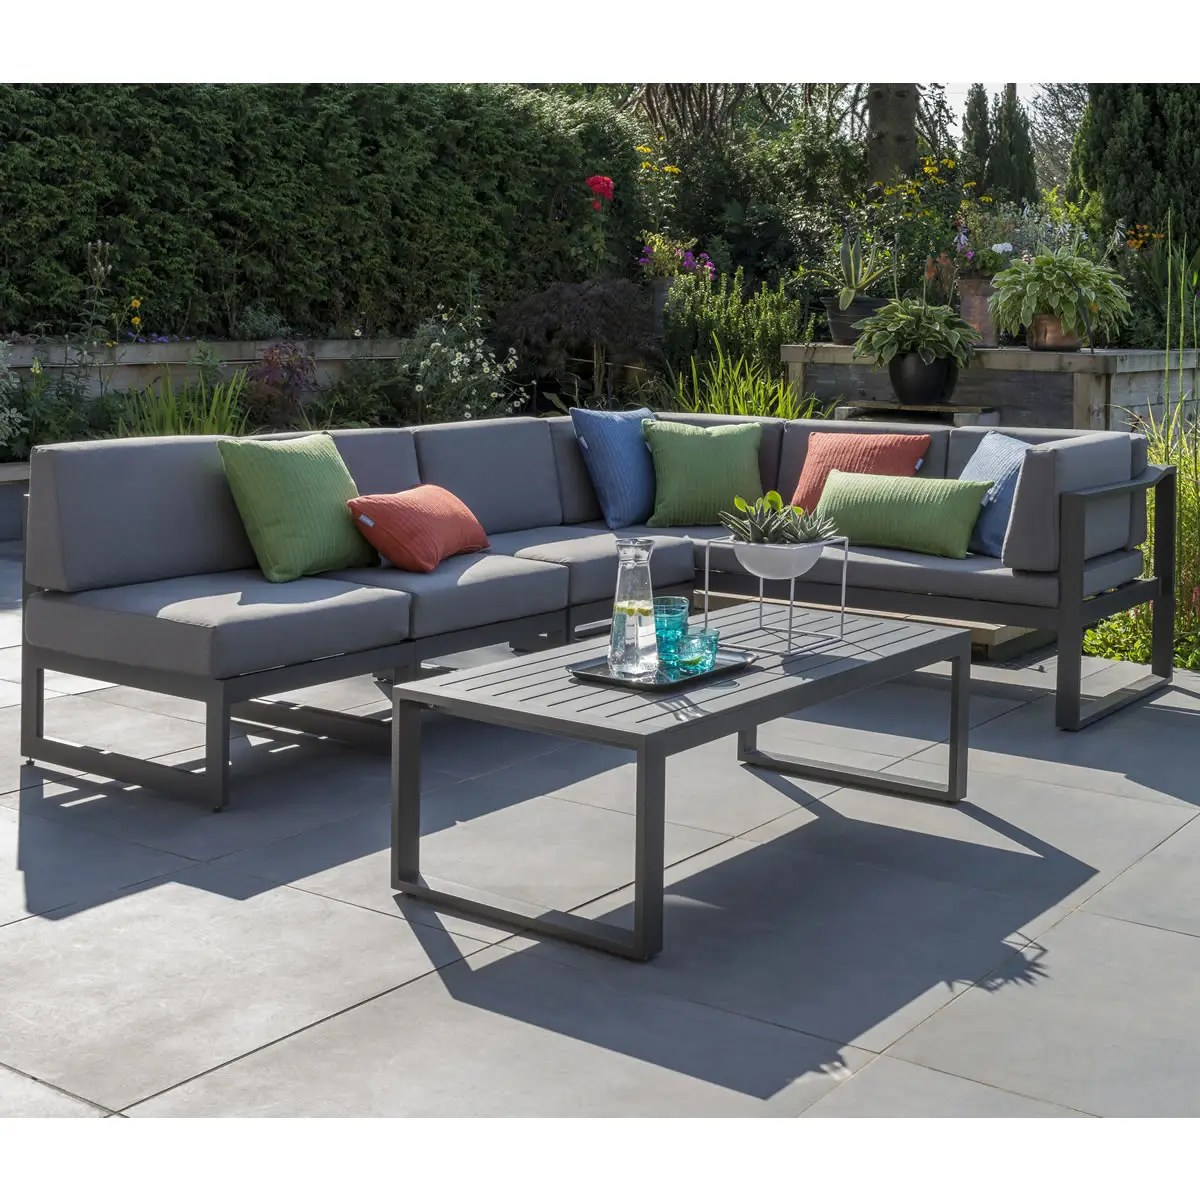 Kettler Menos Versa Corner Lounge Set Mngfv127 0200 Garden Furniture World